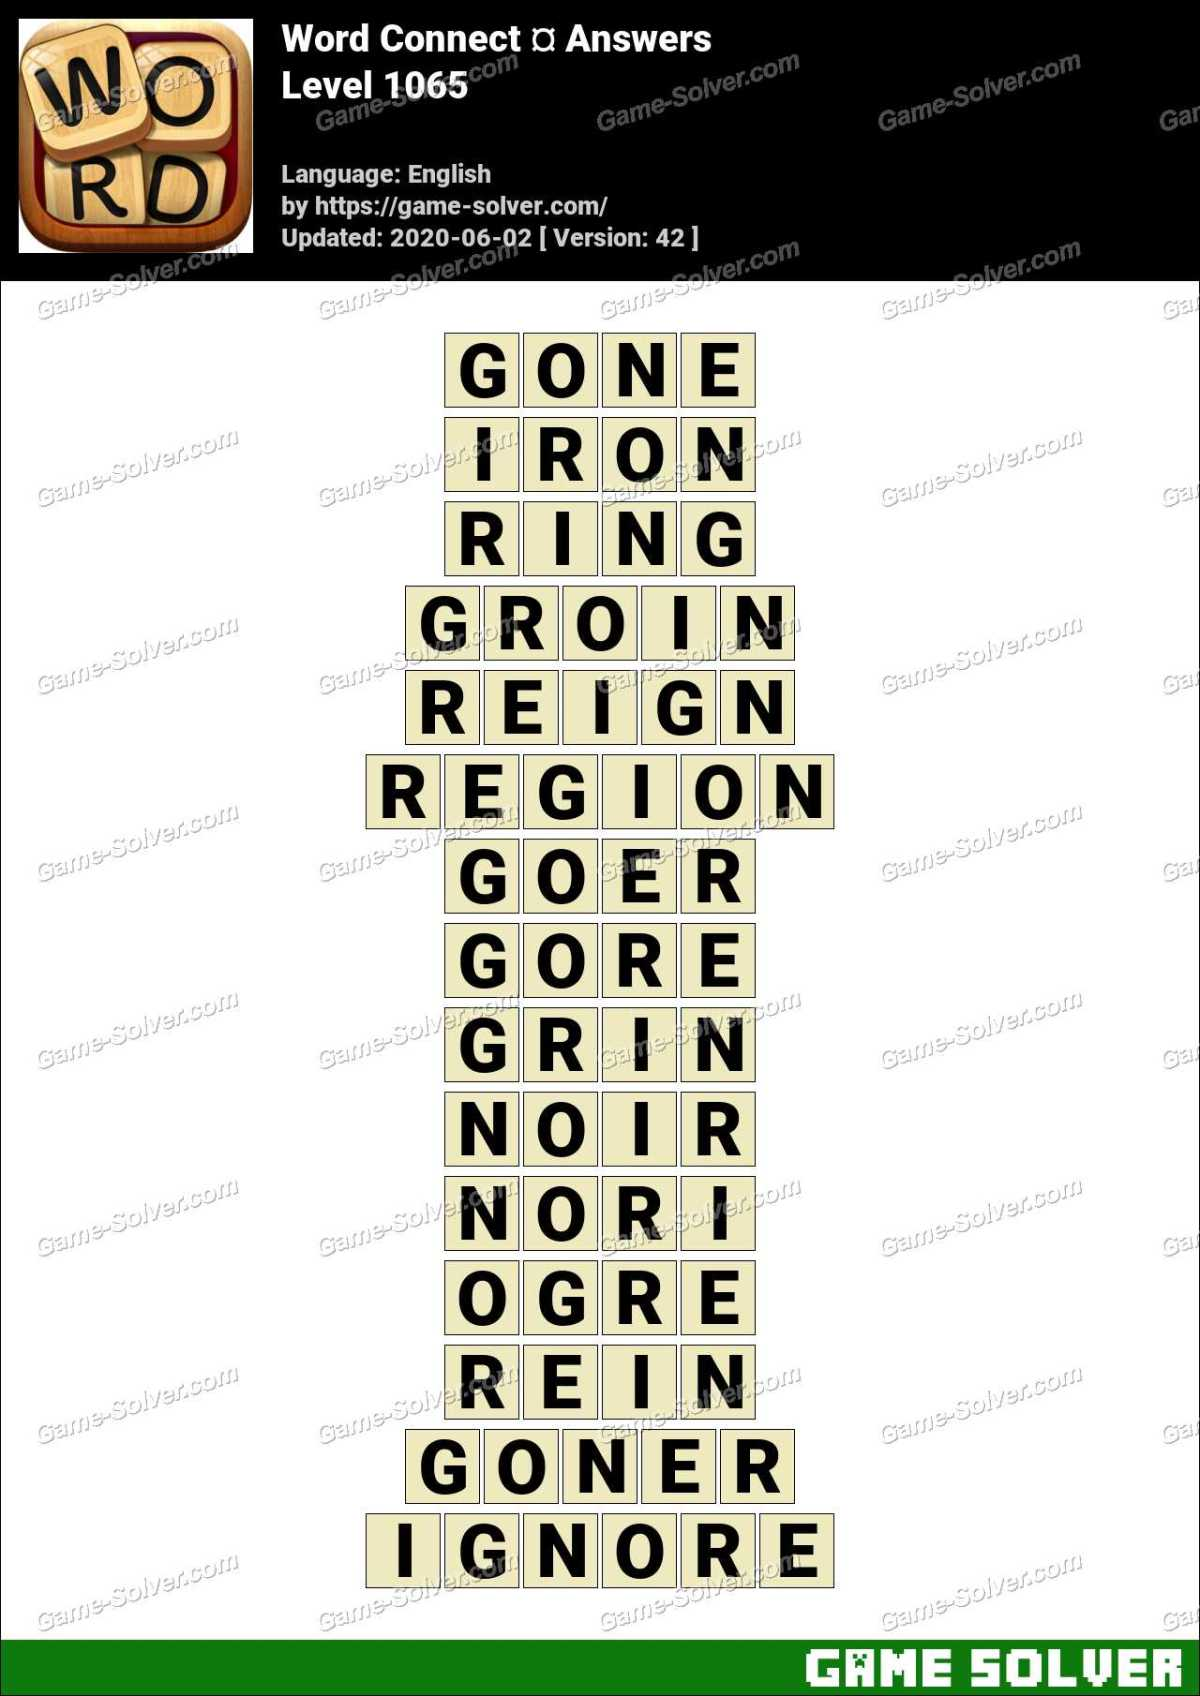 Word Connect Level 1065 Answers